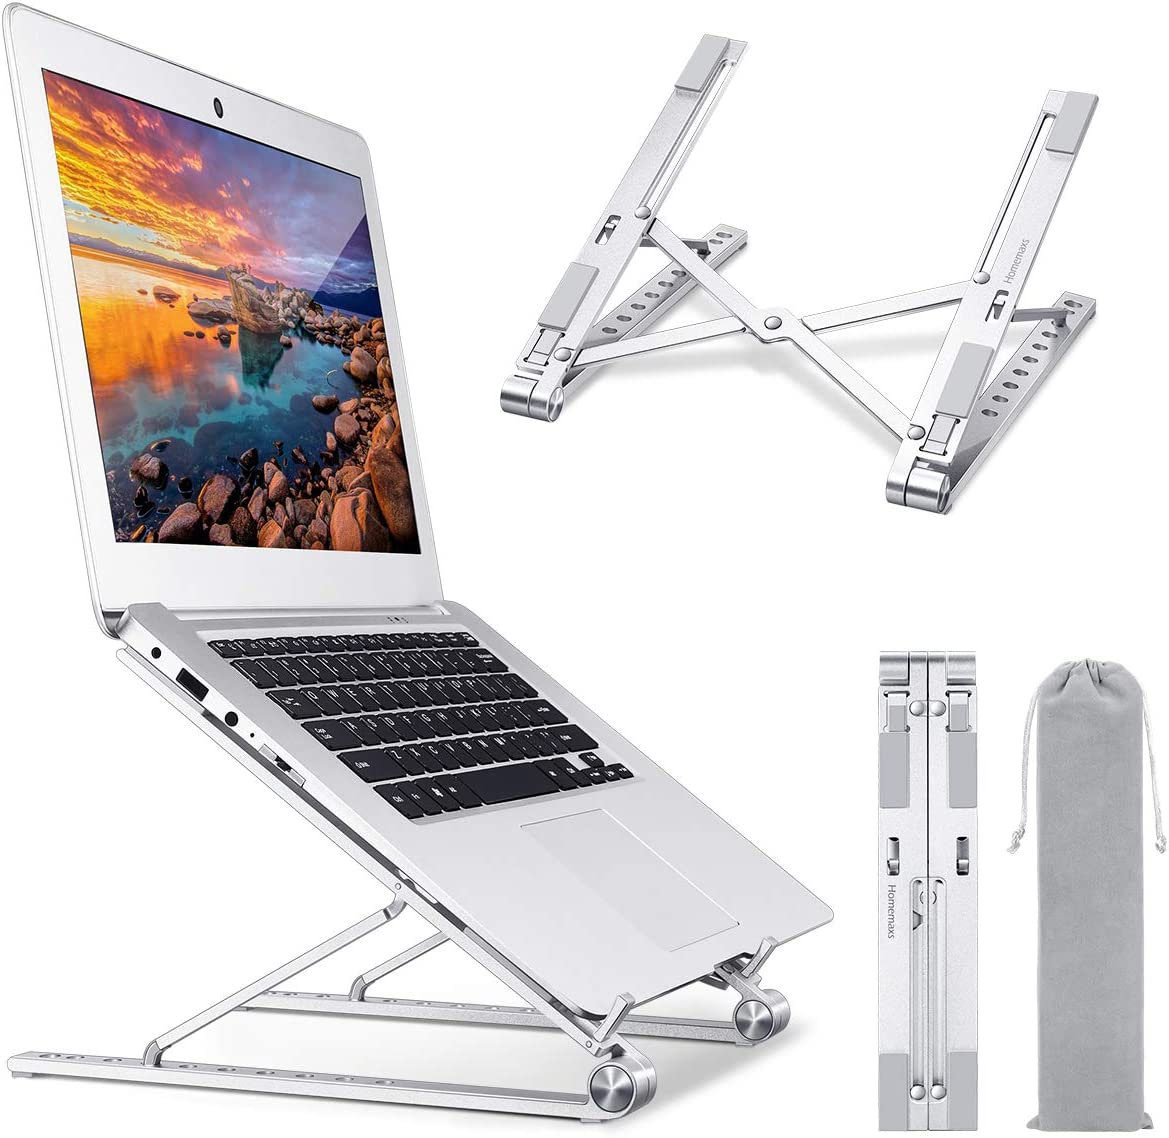 Homemaxs Laptop Stand for Desk, 【2020 Newest】Adjustable Height Computer Stand, Portable Aluminium Ergonomic Laptop Holder Riser Compatible with MacBook, iPad, HP, Dell, Lenovo More 10-17 Laptops